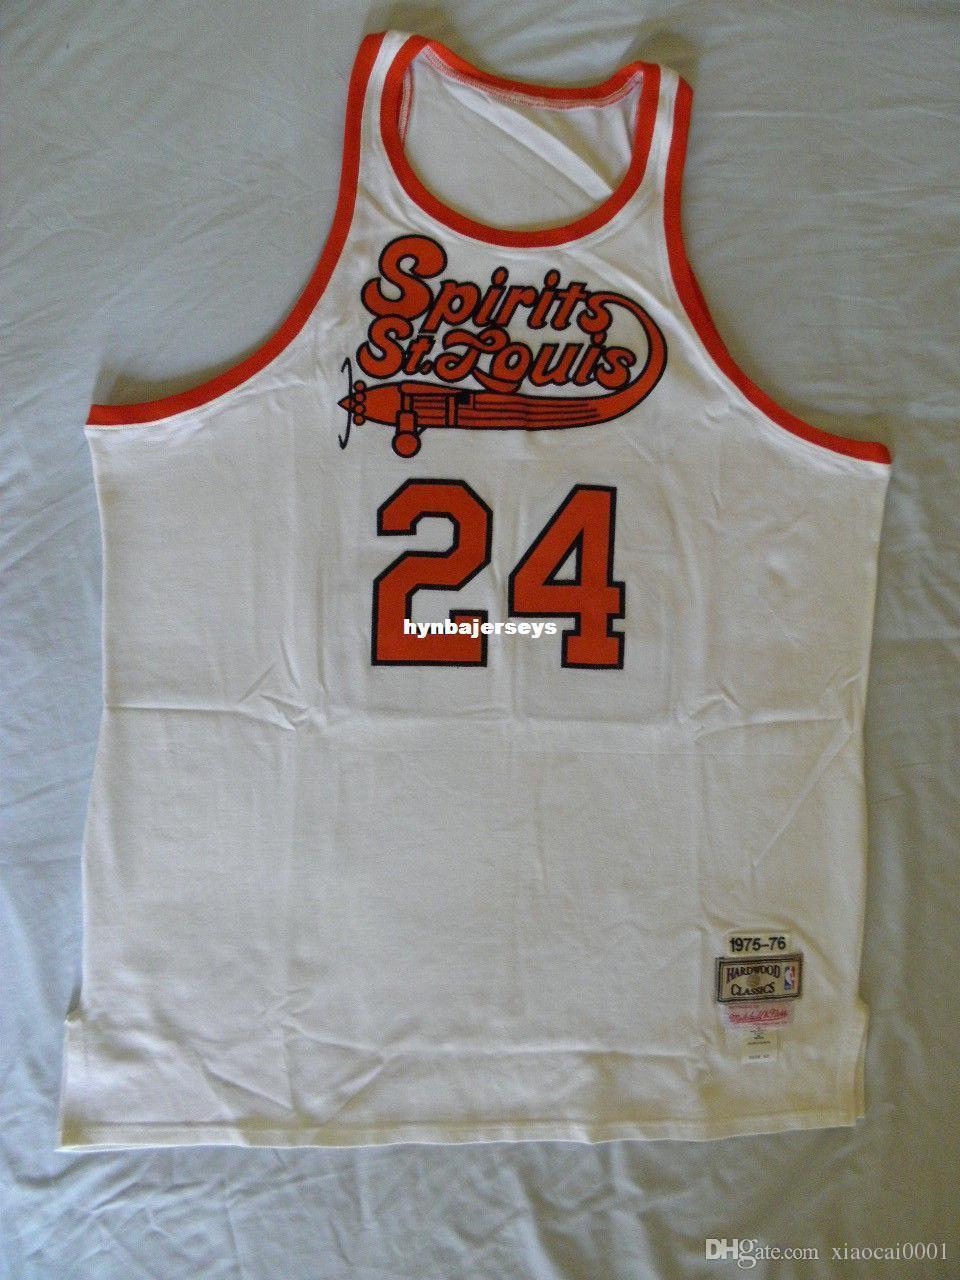 2ad3bece375 Mitchell Ness M N  24 Marvin Barnes Spirits of St Louis Top Jersey ...